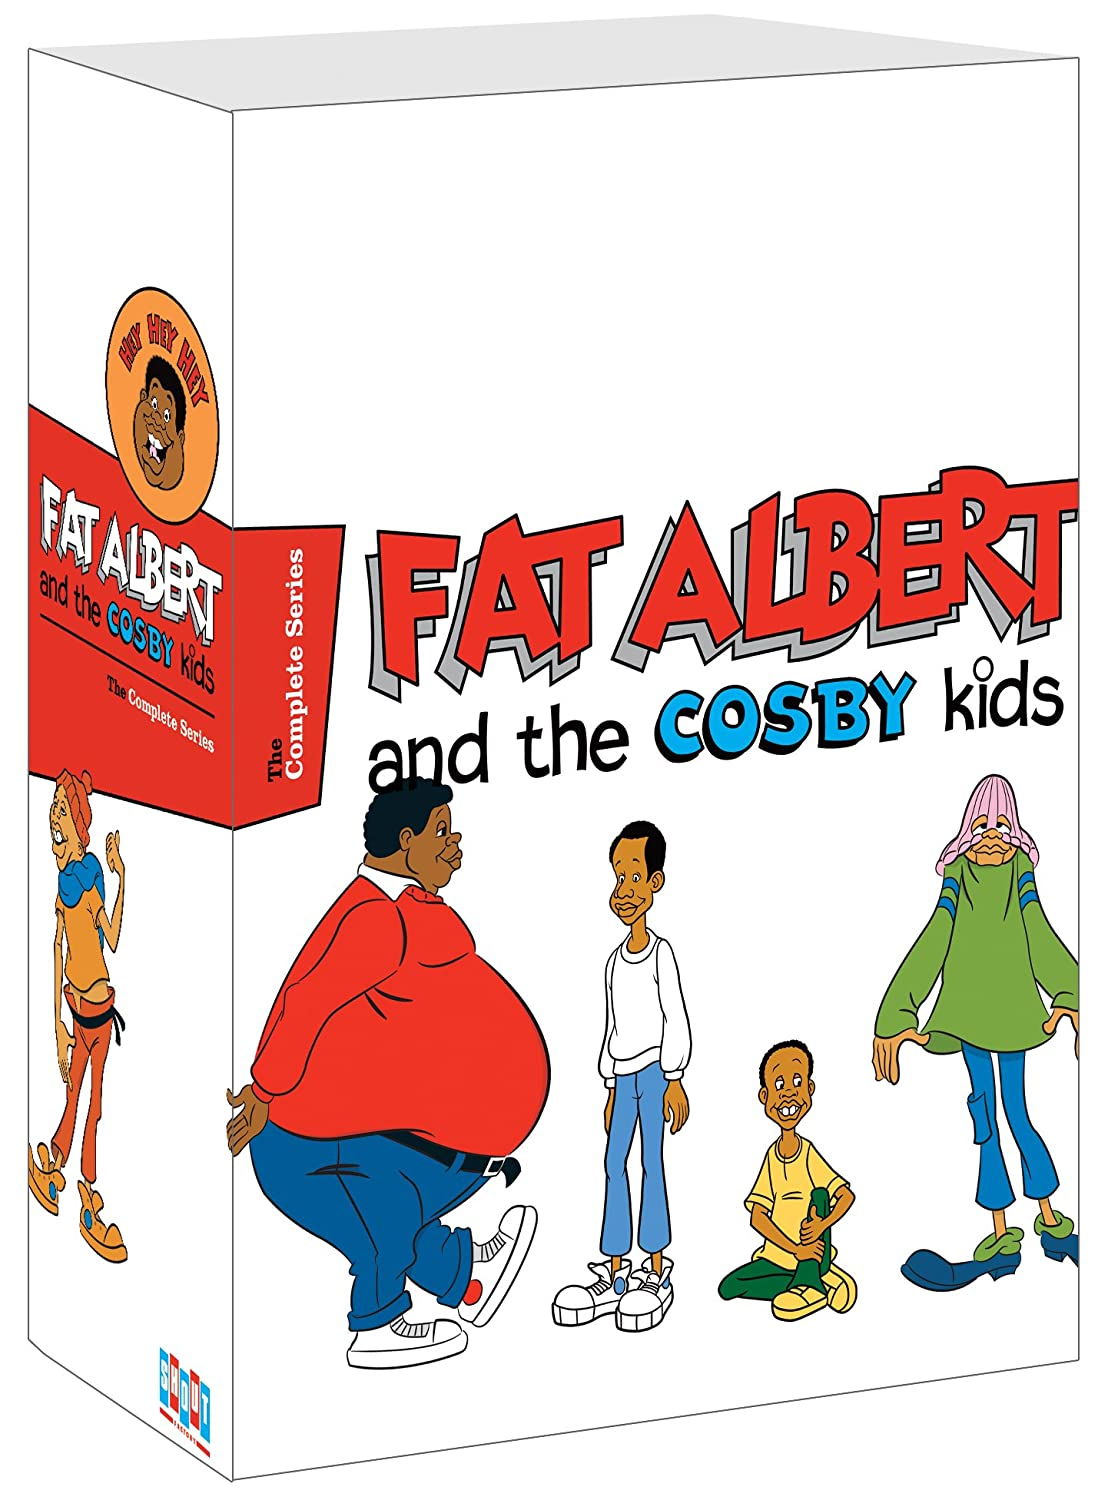 Amazon.com: Fat Albert and the Cosby Kids: The Complete Series: Bill ...